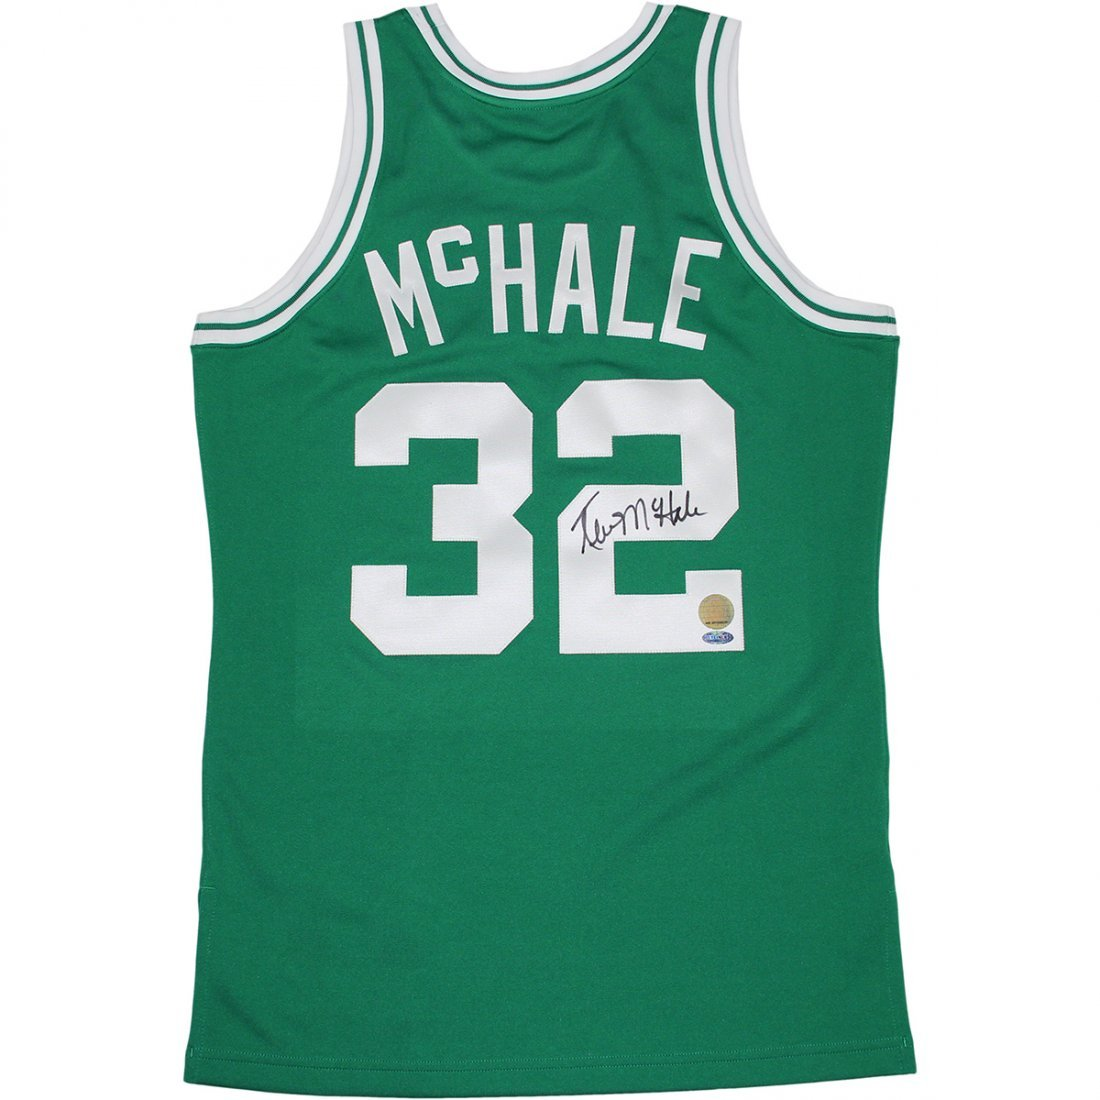 Kevin McHale Signed Mitchell and Ness Green Jersey